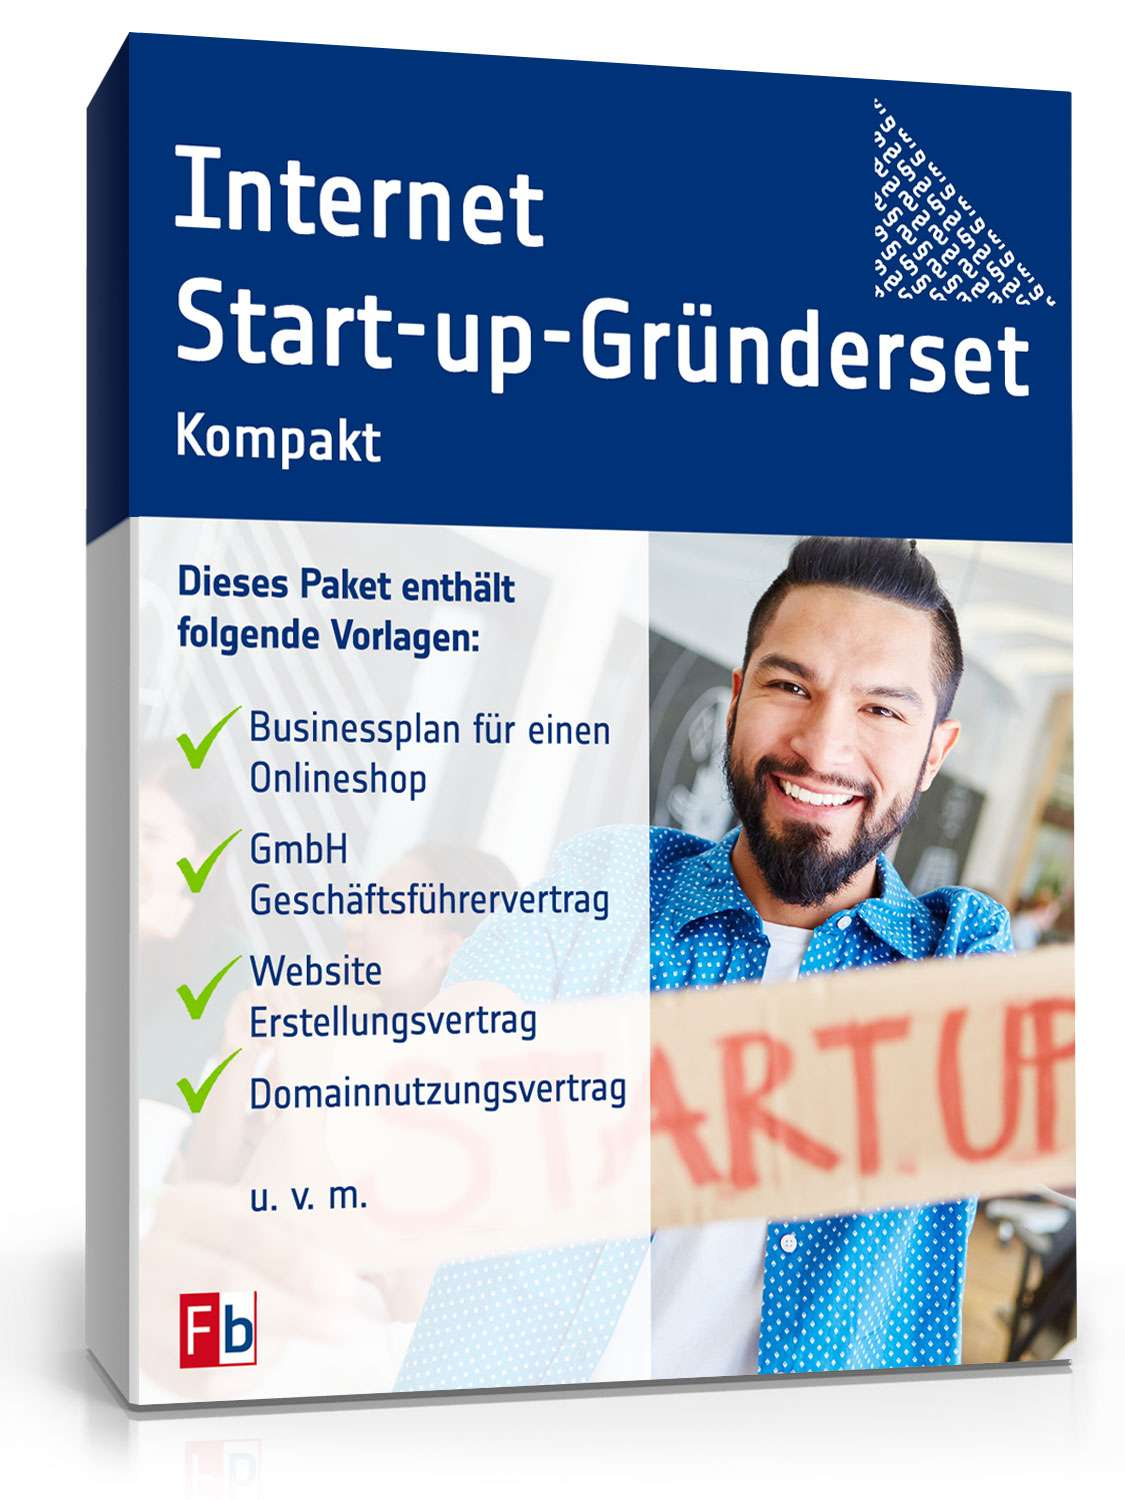 Internet-Start-up-Gründerset kompakt